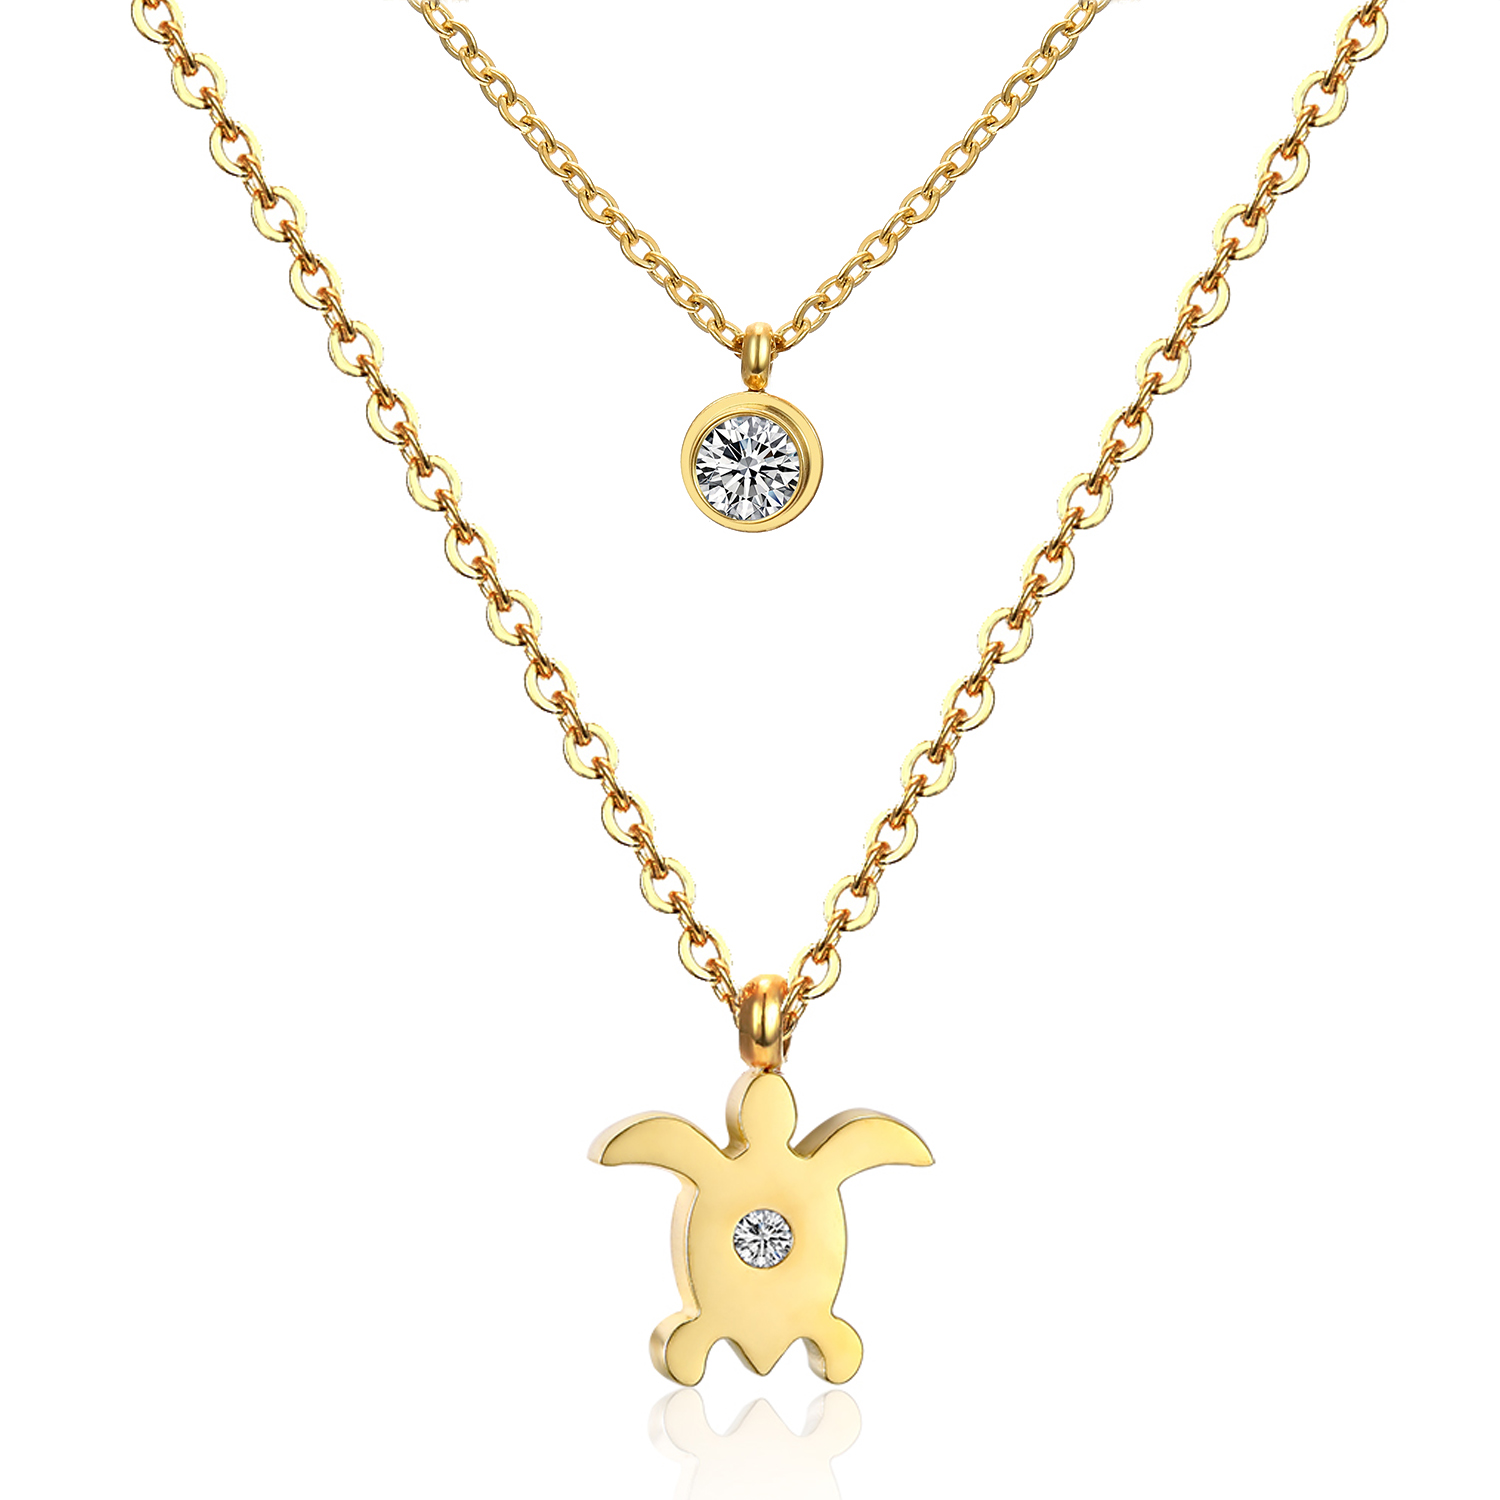 2016 New Design Double Chain Necklace Sea Turtle Pendant Necklace Fashion Stainless Steel Jewelry Necklace For Women(China (Mainland))